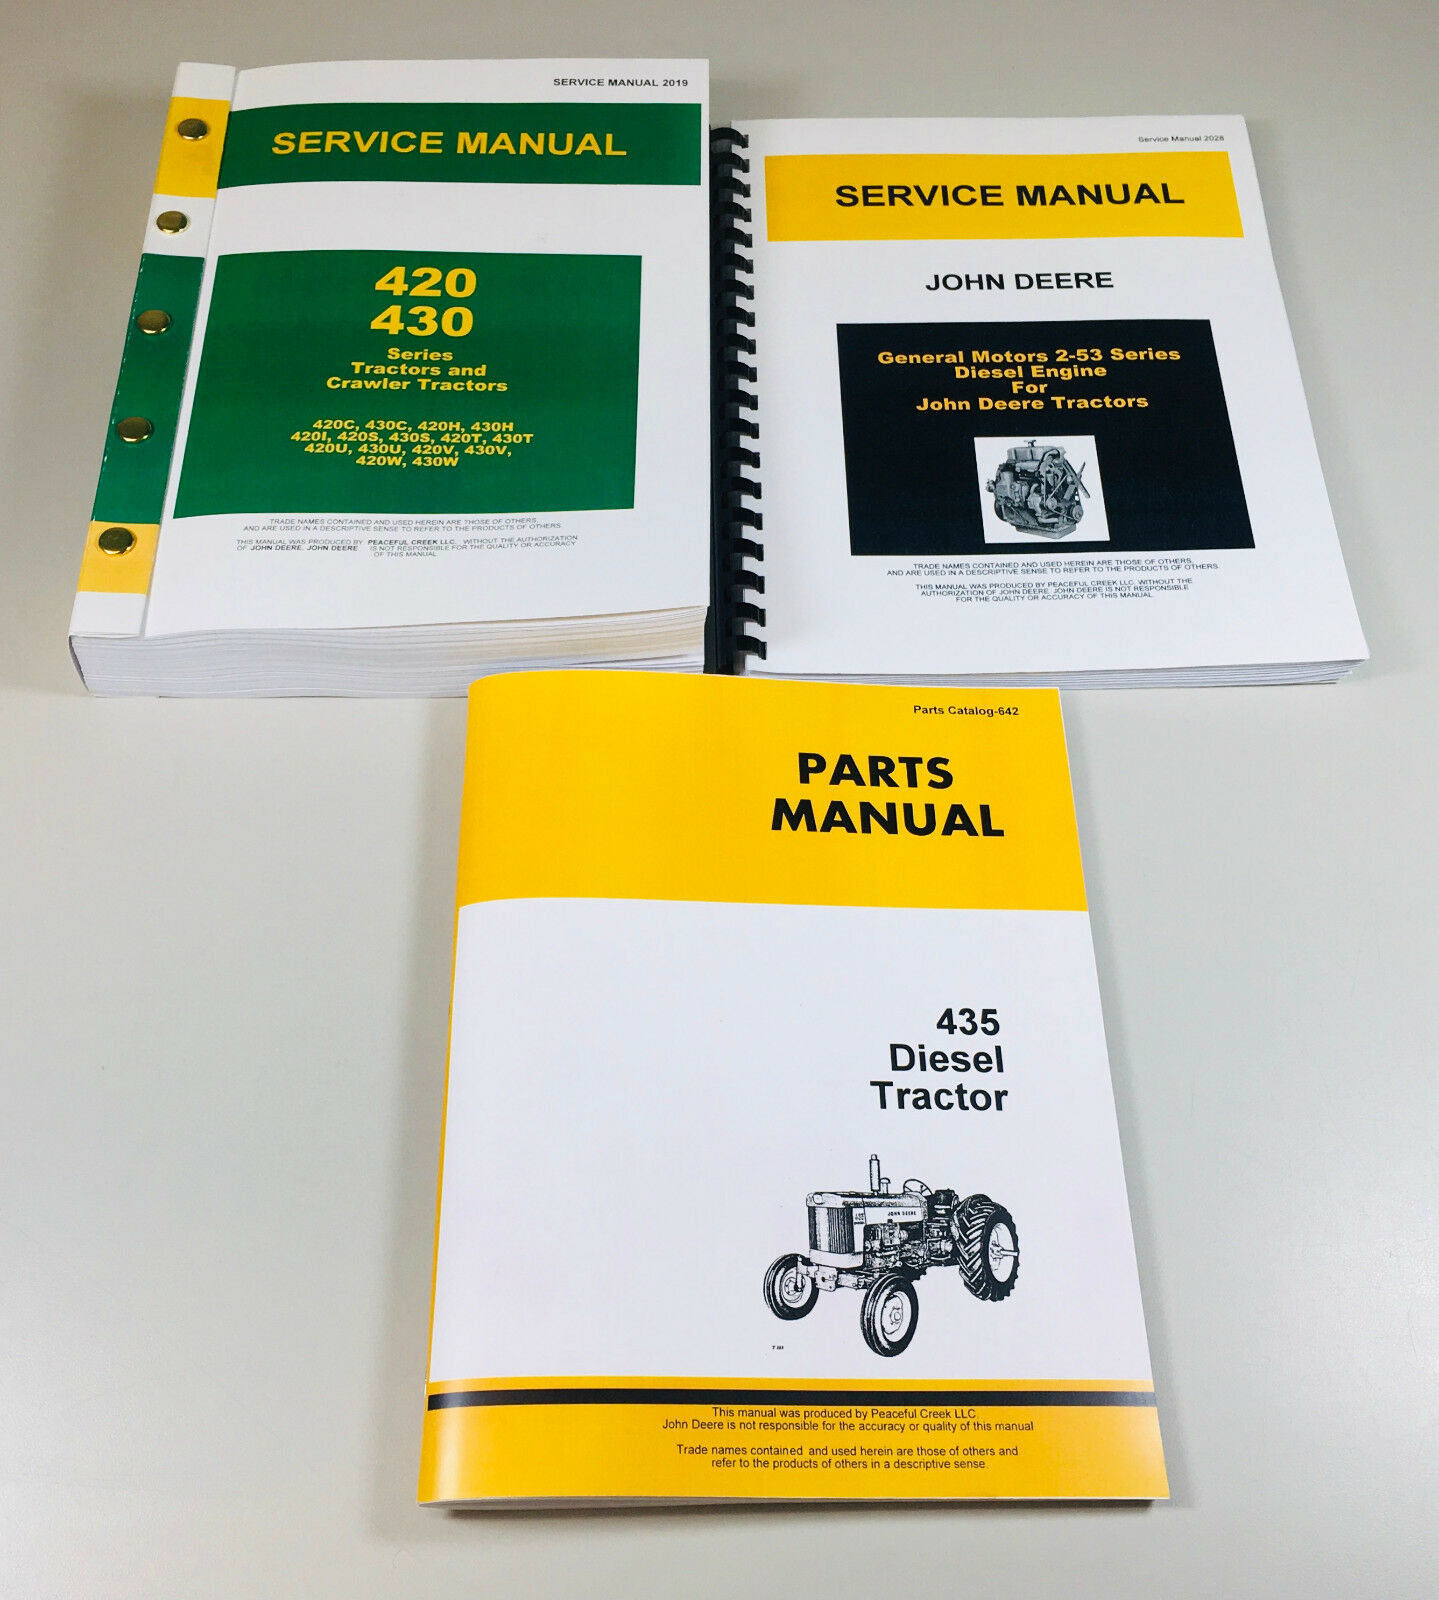 Service Manual Set For John Deere 435 Diesel Tractor Repair Shop Wiring Diagram Categories